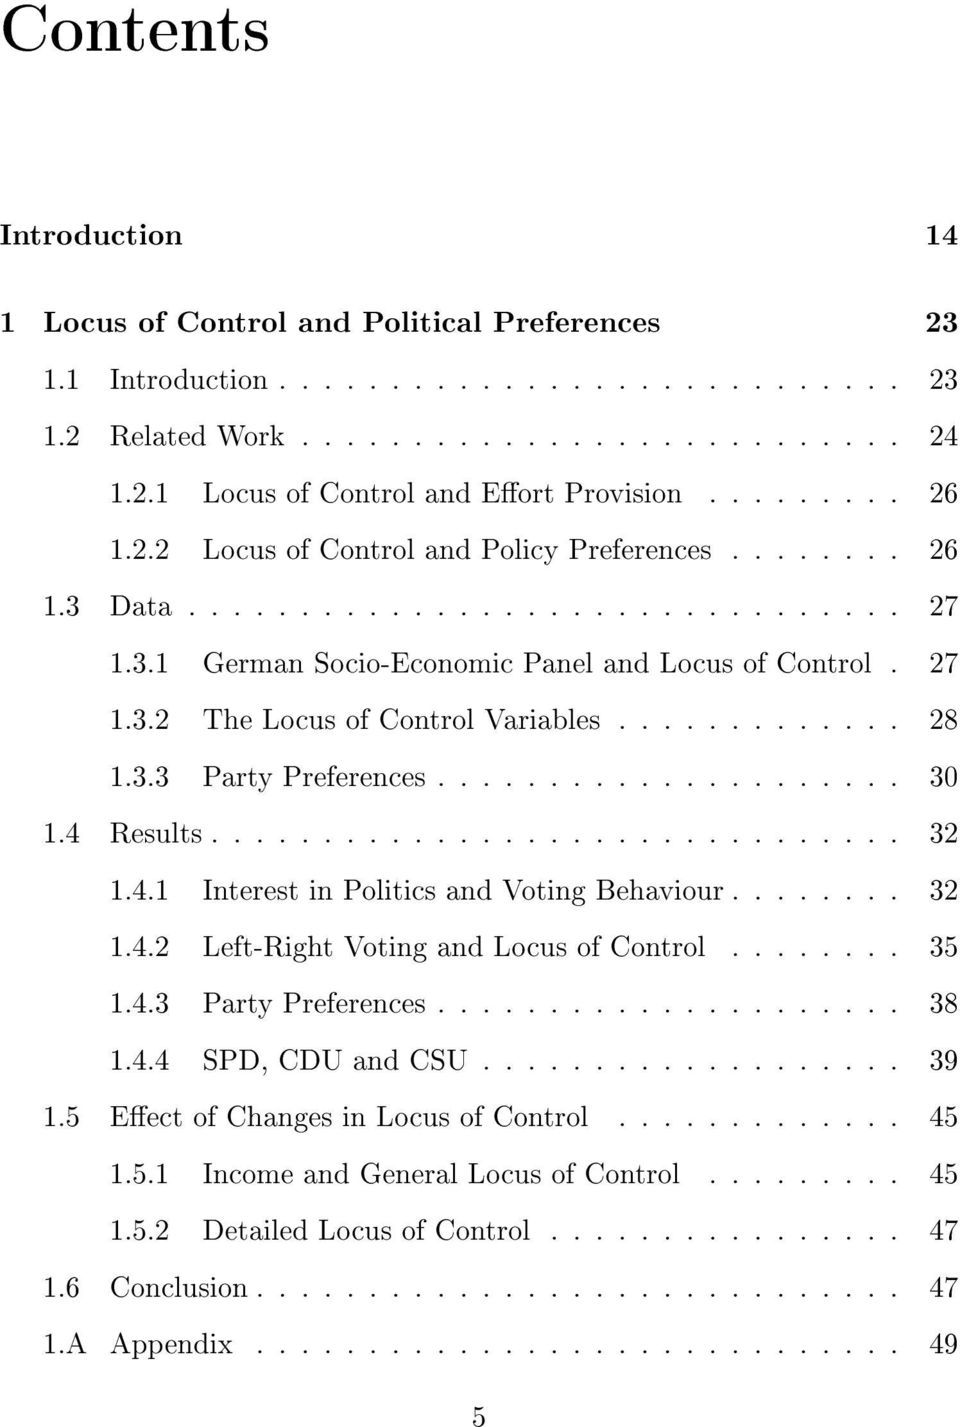 ............ 28 1.3.3 Party Preferences..................... 30 1.4 Results............................... 32 1.4.1 Interest in Politics and Voting Behaviour........ 32 1.4.2 Left-Right Voting and Locus of Control.